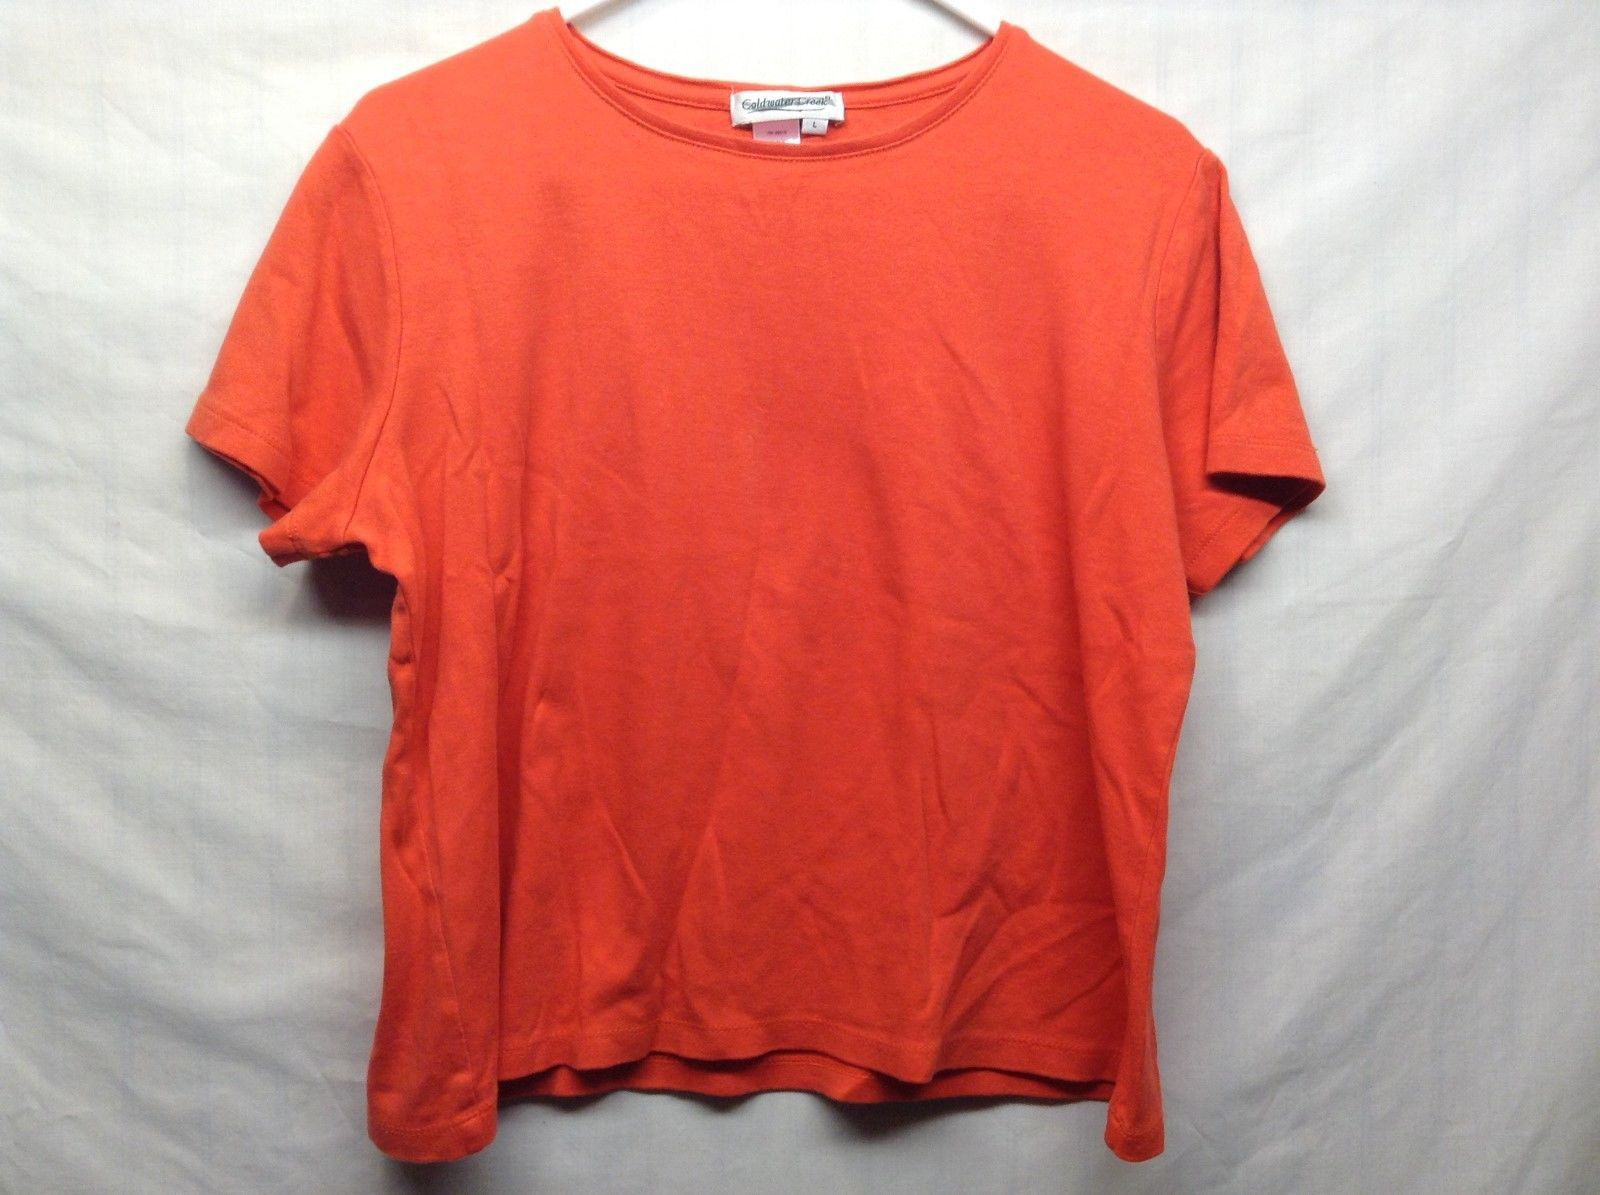 Ladies Tangerine Short Sleeve Pullover Shirt by Coldwater Creek Sz L